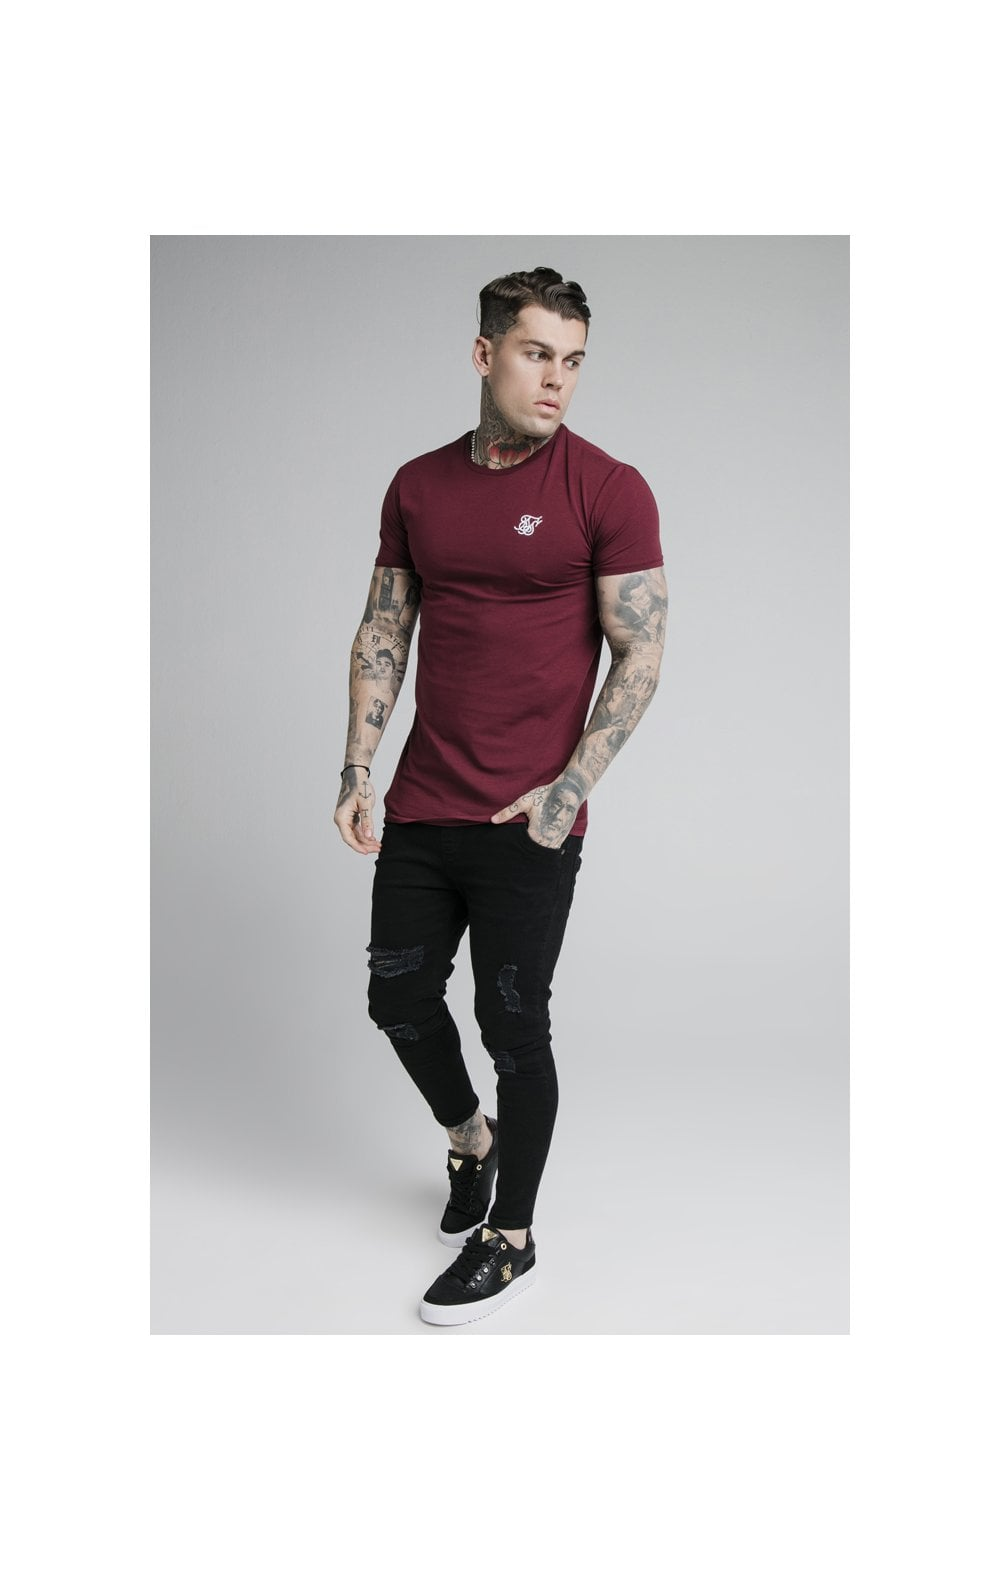 Load image into Gallery viewer, SikSilk Straight Hem Gym Tee - Burgundy (3)